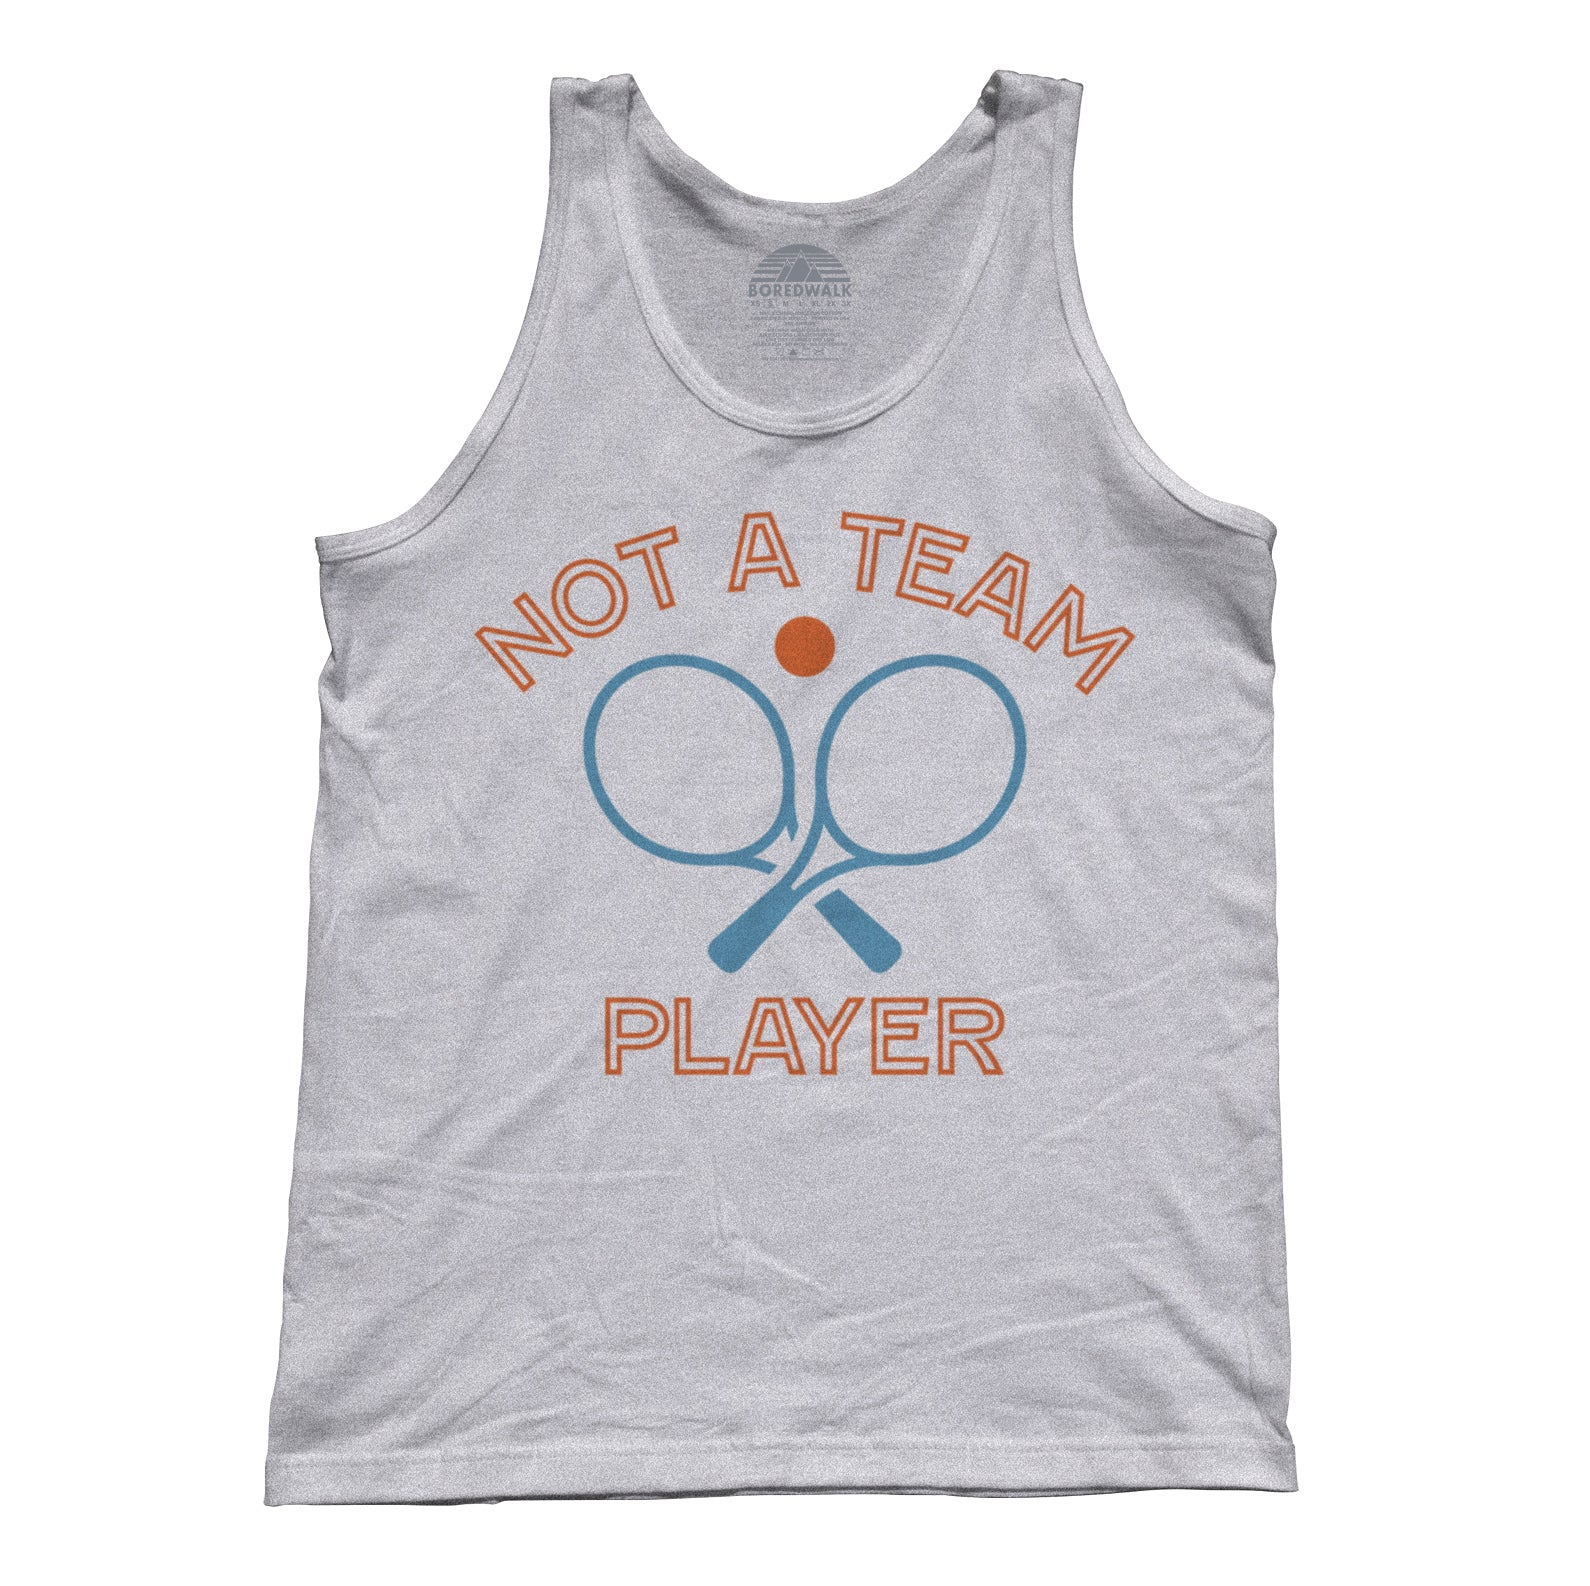 Unisex Not a Team Player Tank Top